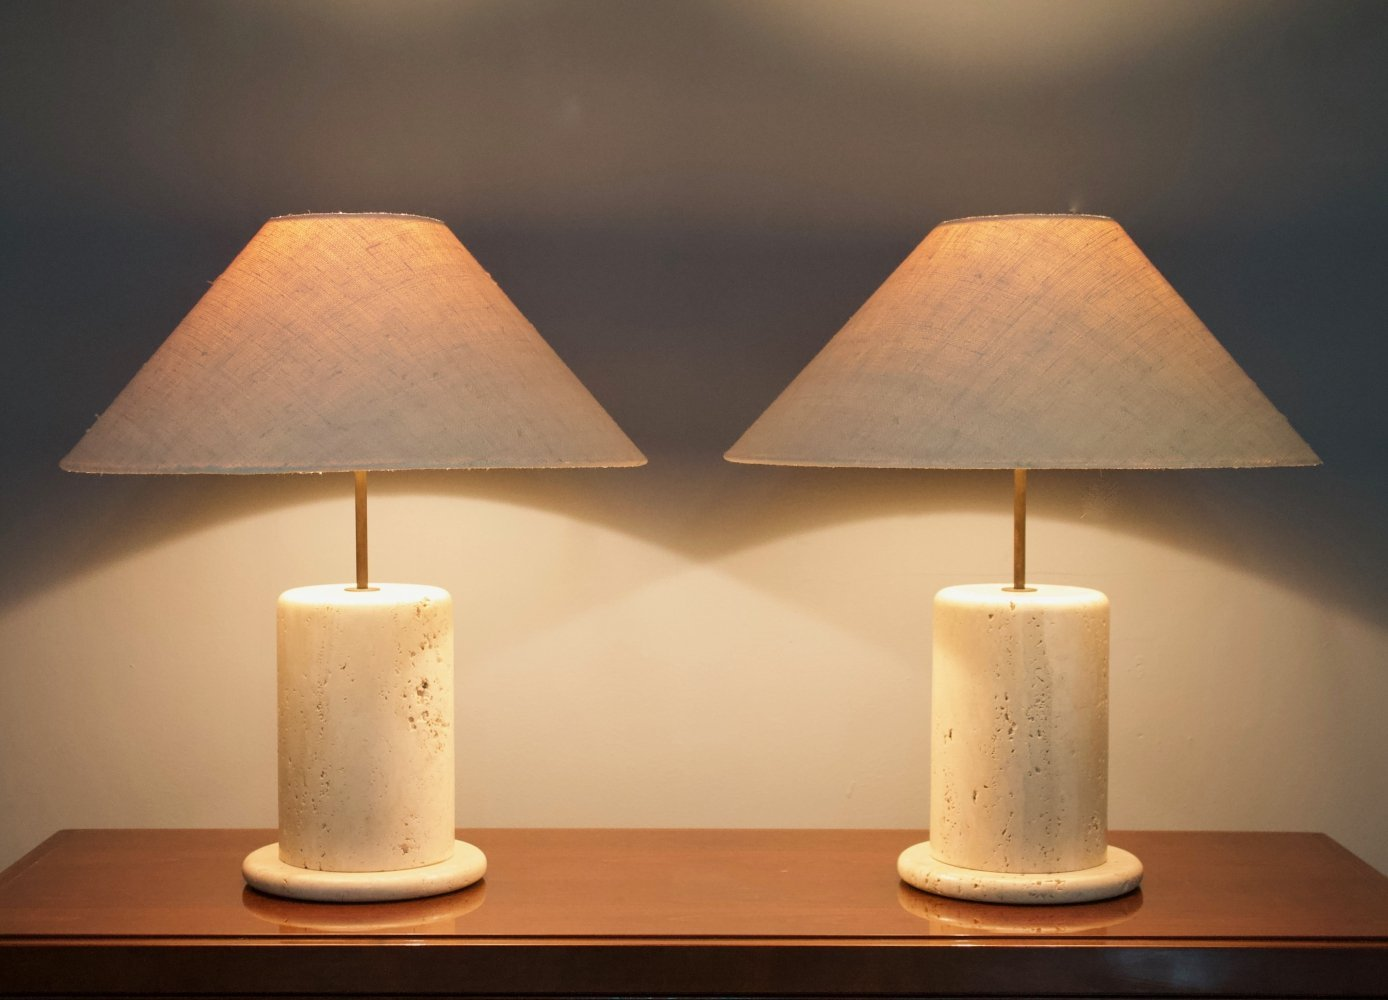 Pair of Italian Travertine Table Lamps, 1970s